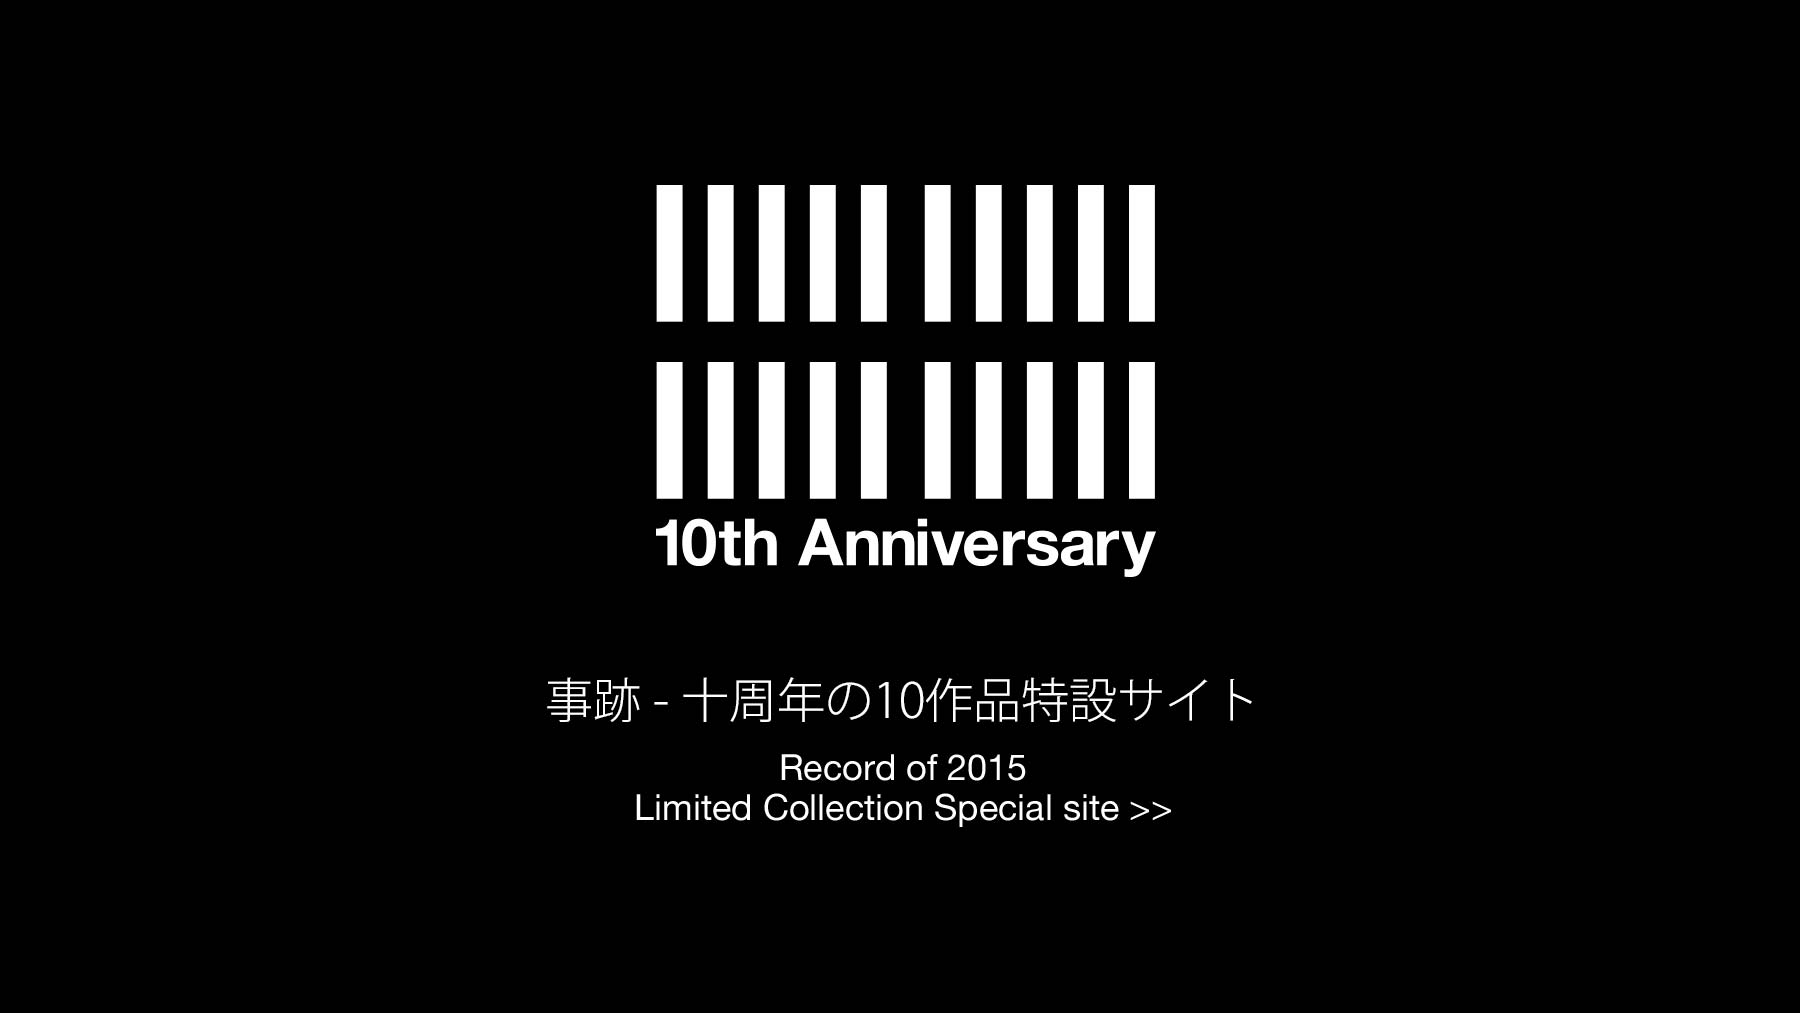 Shizukuya 10th Anniversary Limited Collection